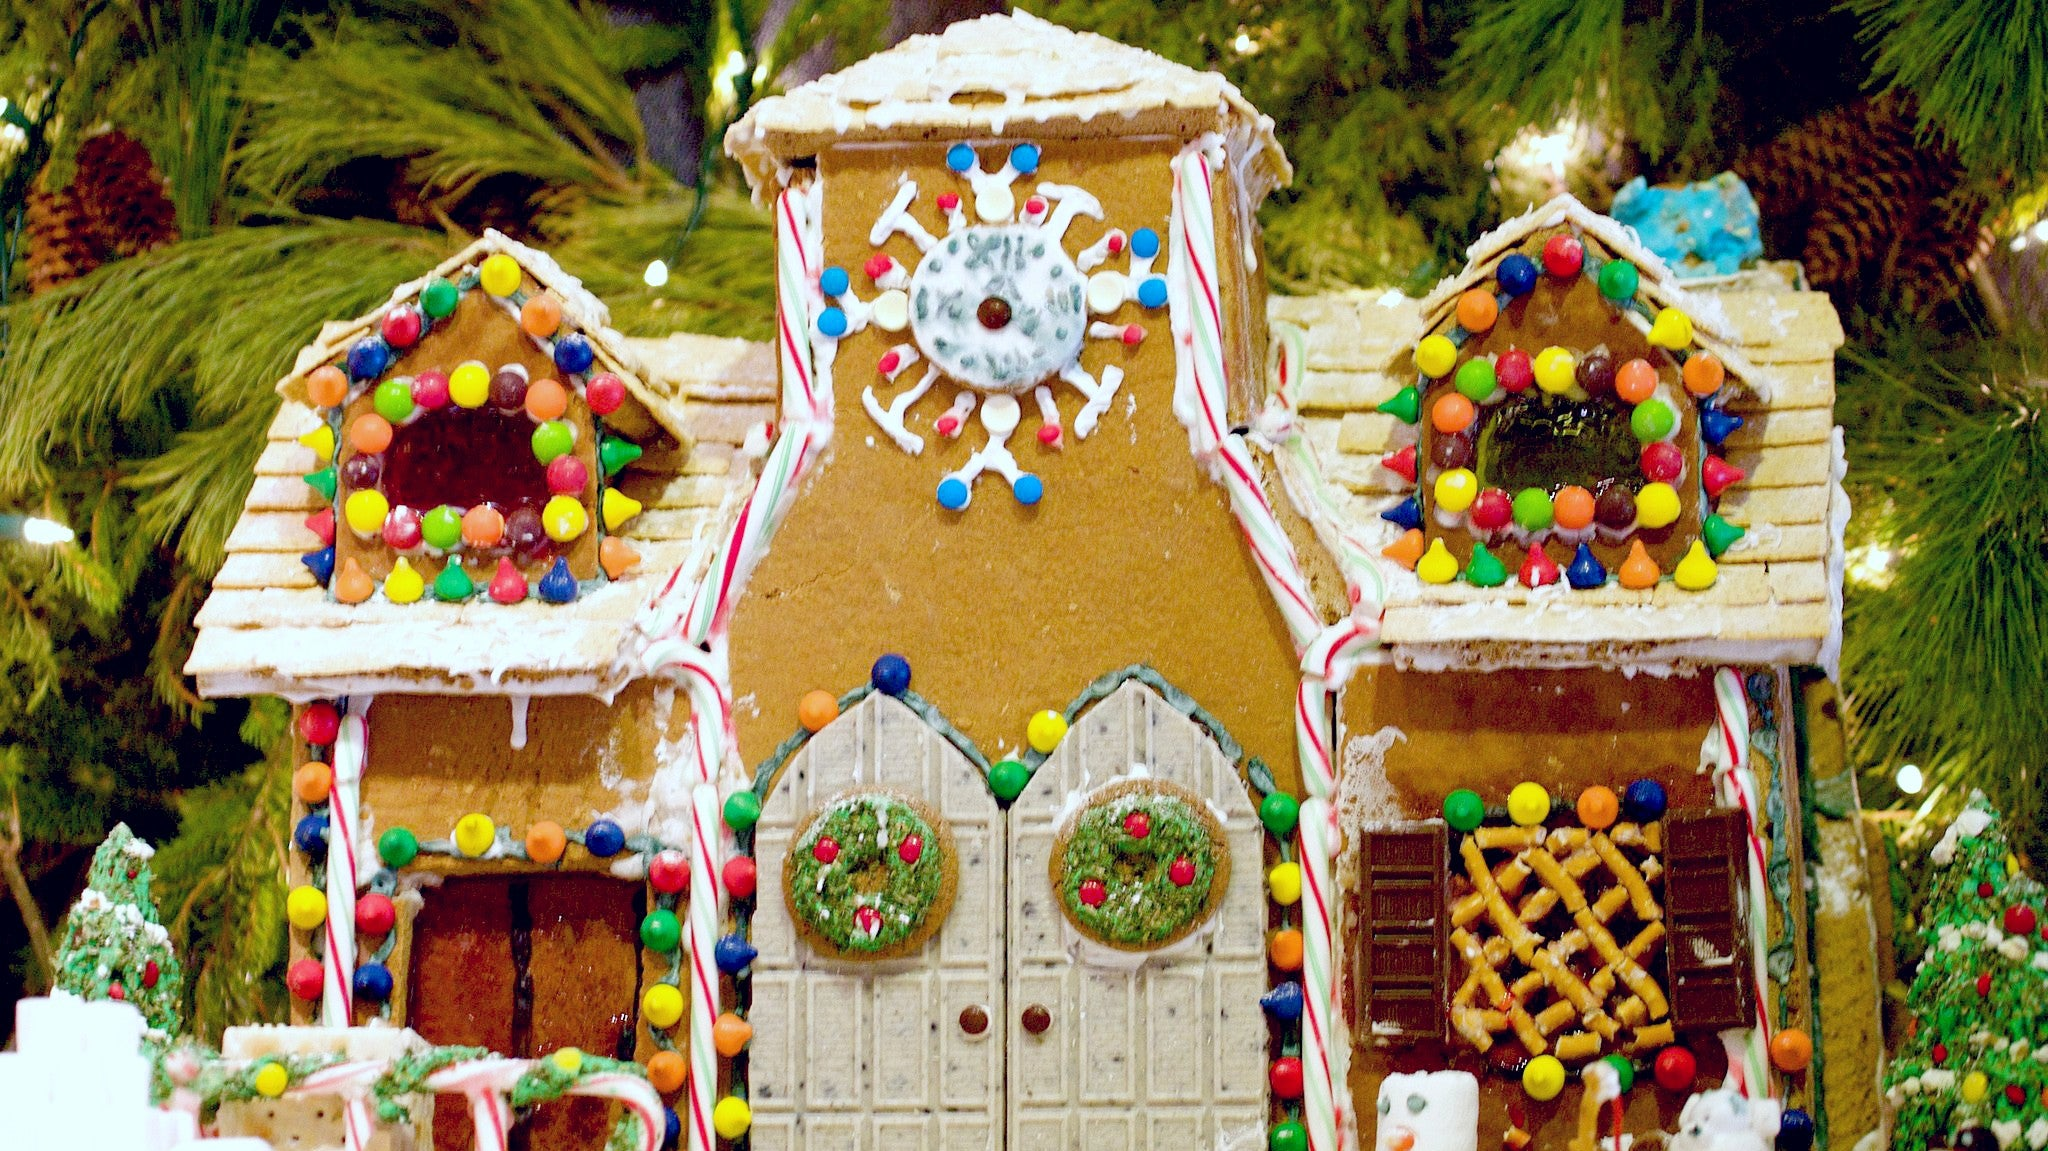 Build Your Gingerbread House Using Marshmallow Treats For Stability